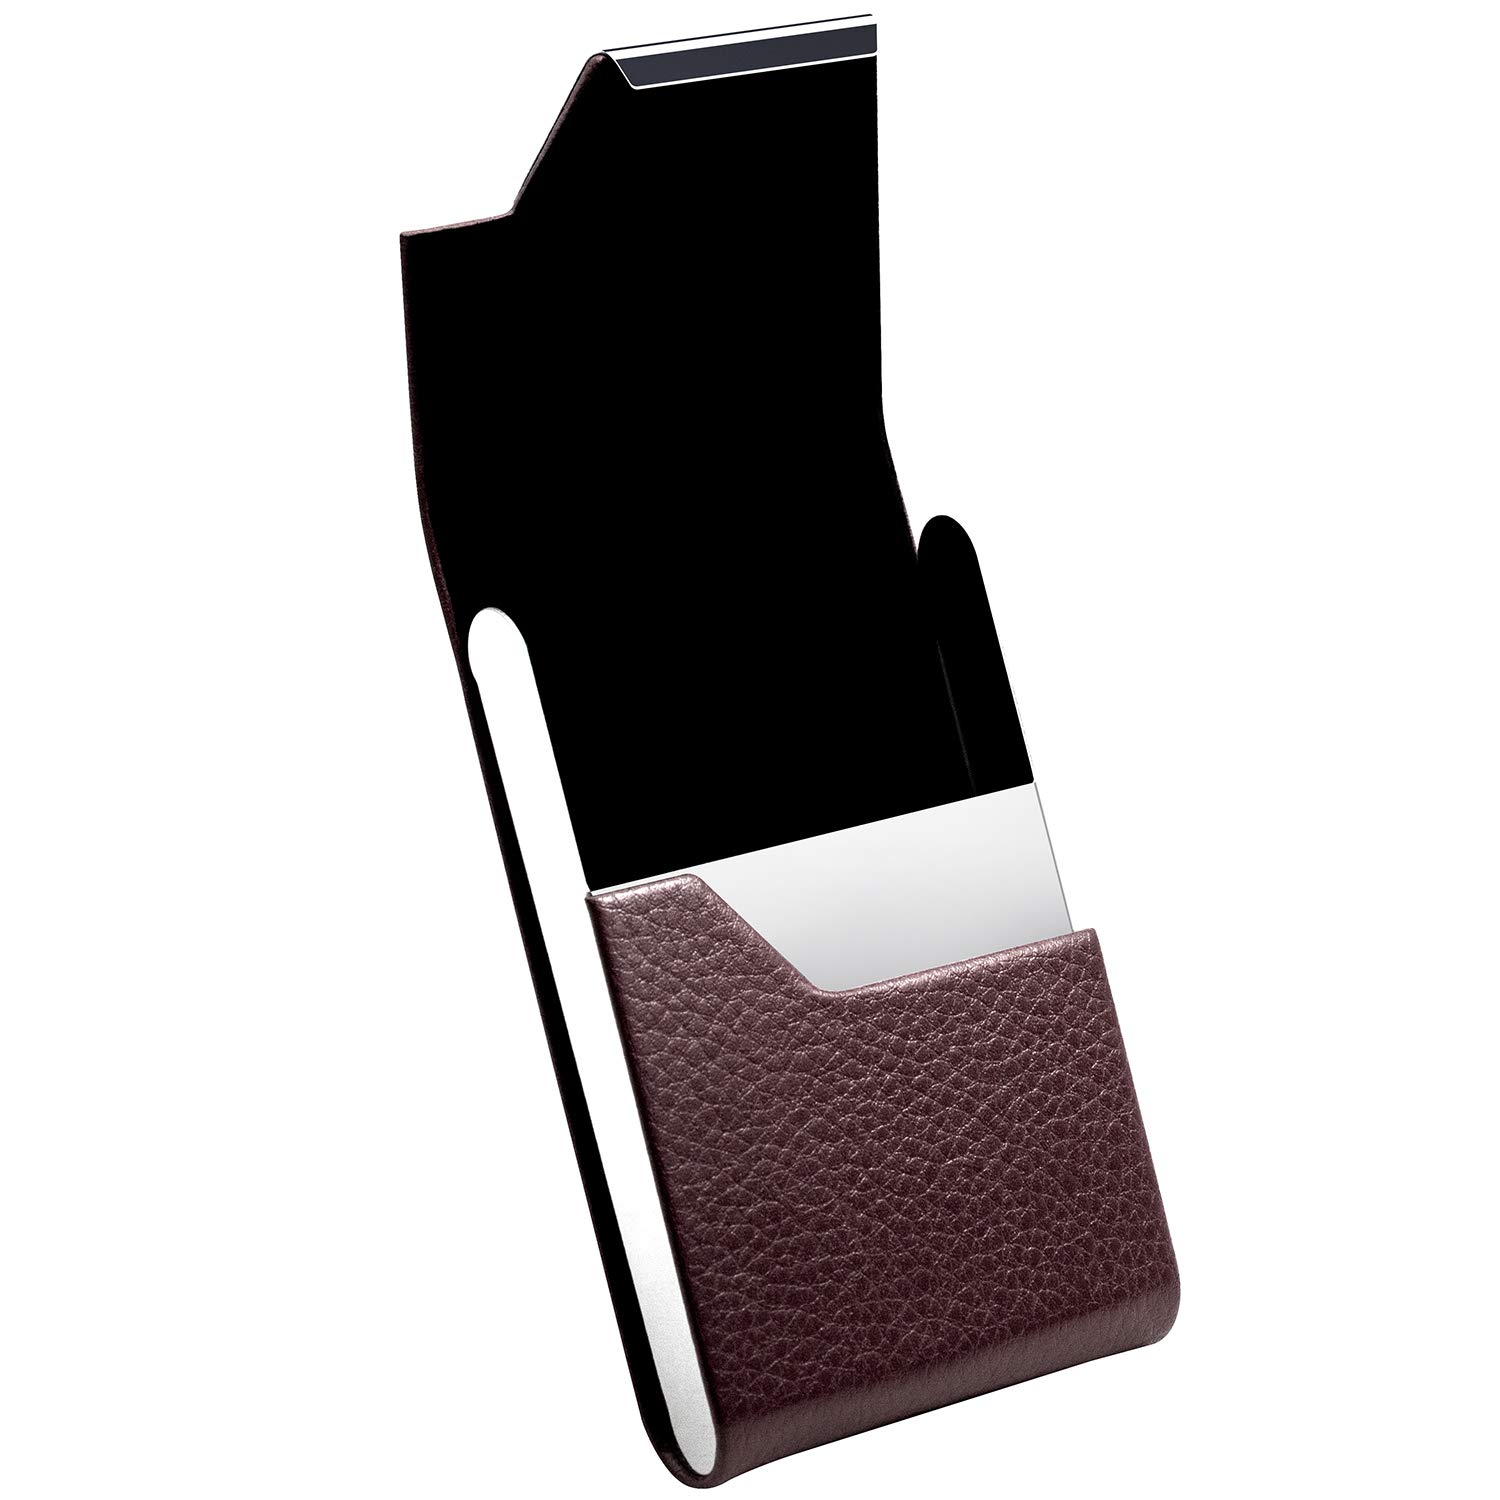 V-Rose red Credit Card Holder Padike Professional Business Card Holder Business Card Case Luxury PU Leather /& Stainless Steel Card Holder Keep Business Cards in Immaculate Condition.